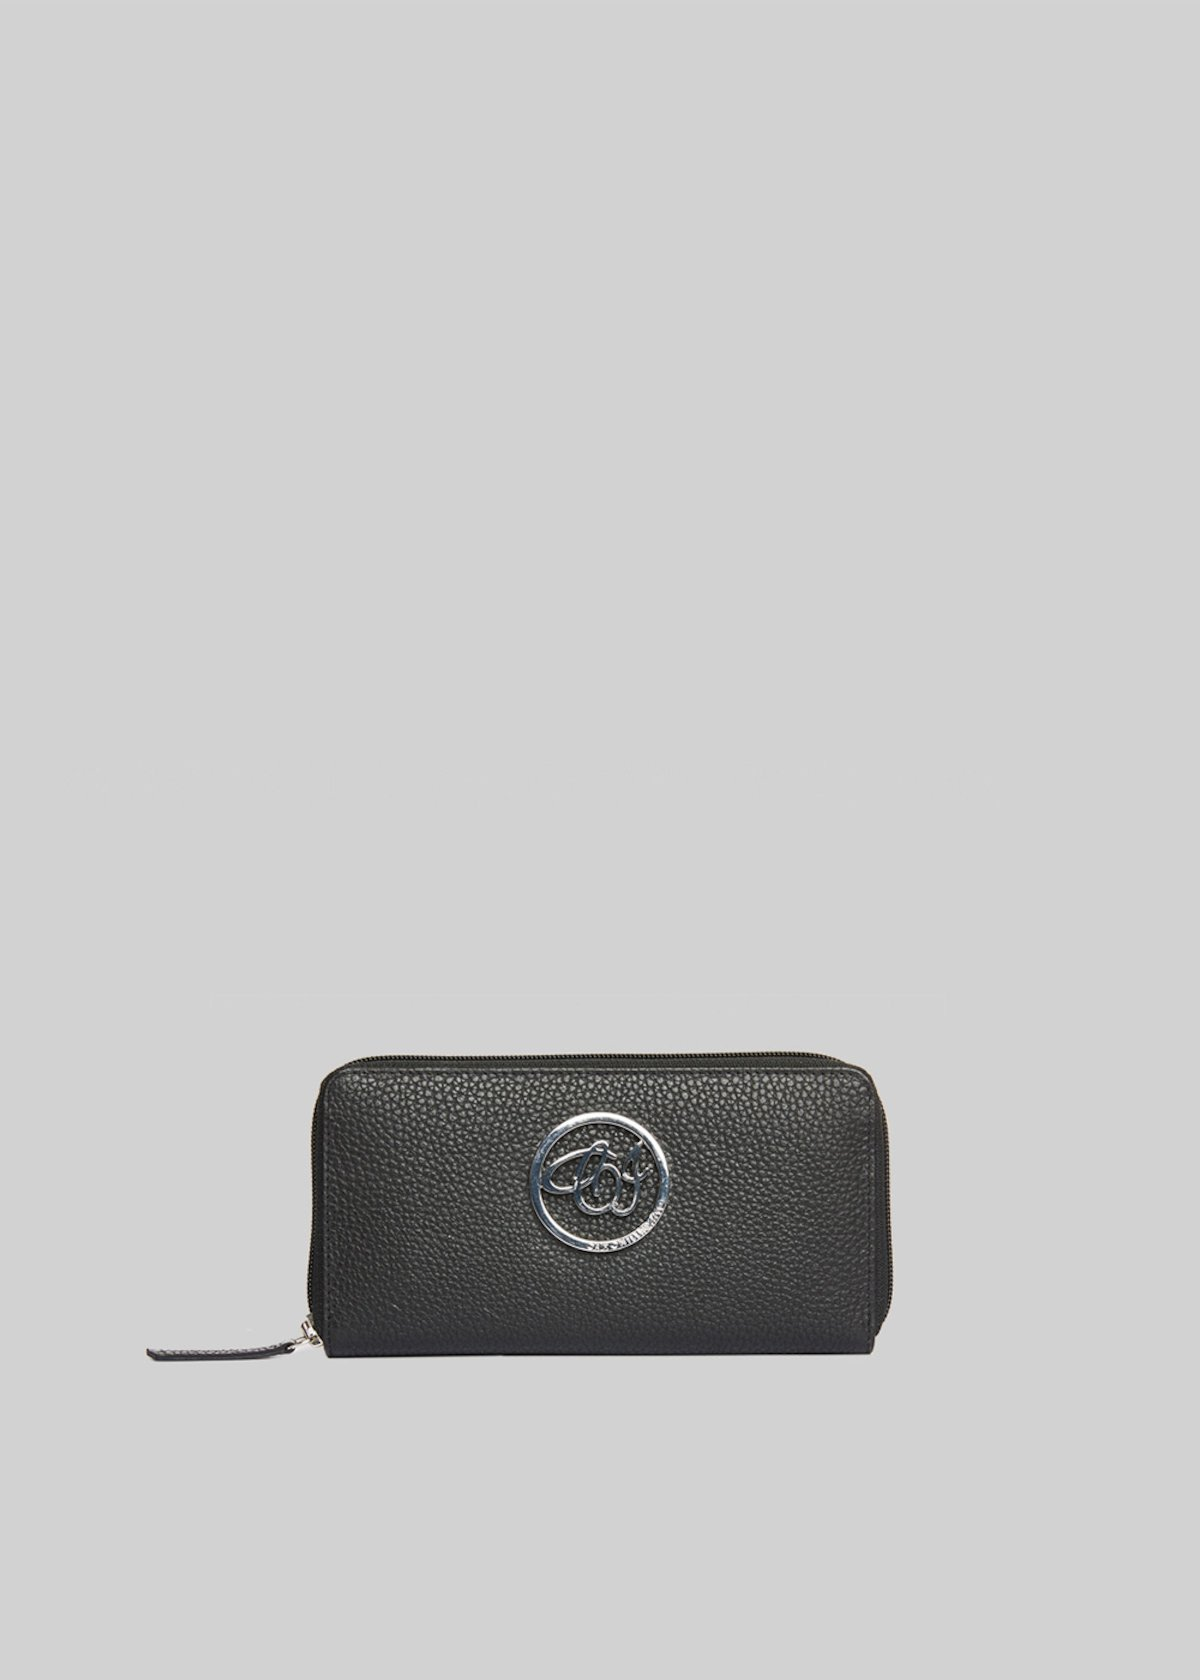 Plumbeo wallet genuine leather with CI logo detail